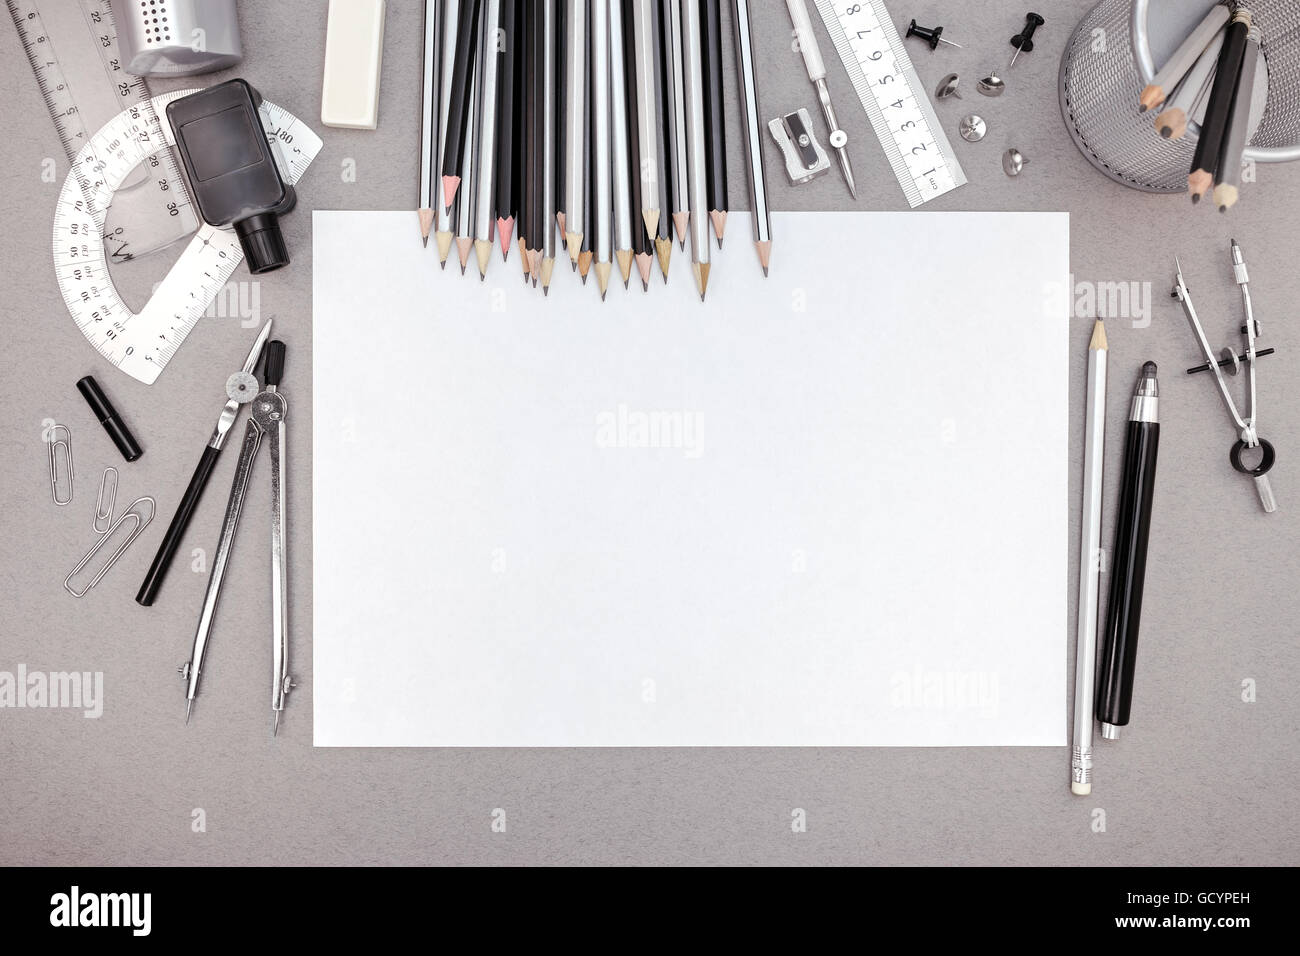 office drawing tools. stock photo office workspace with blank paper pencils and various drawing tools top view i